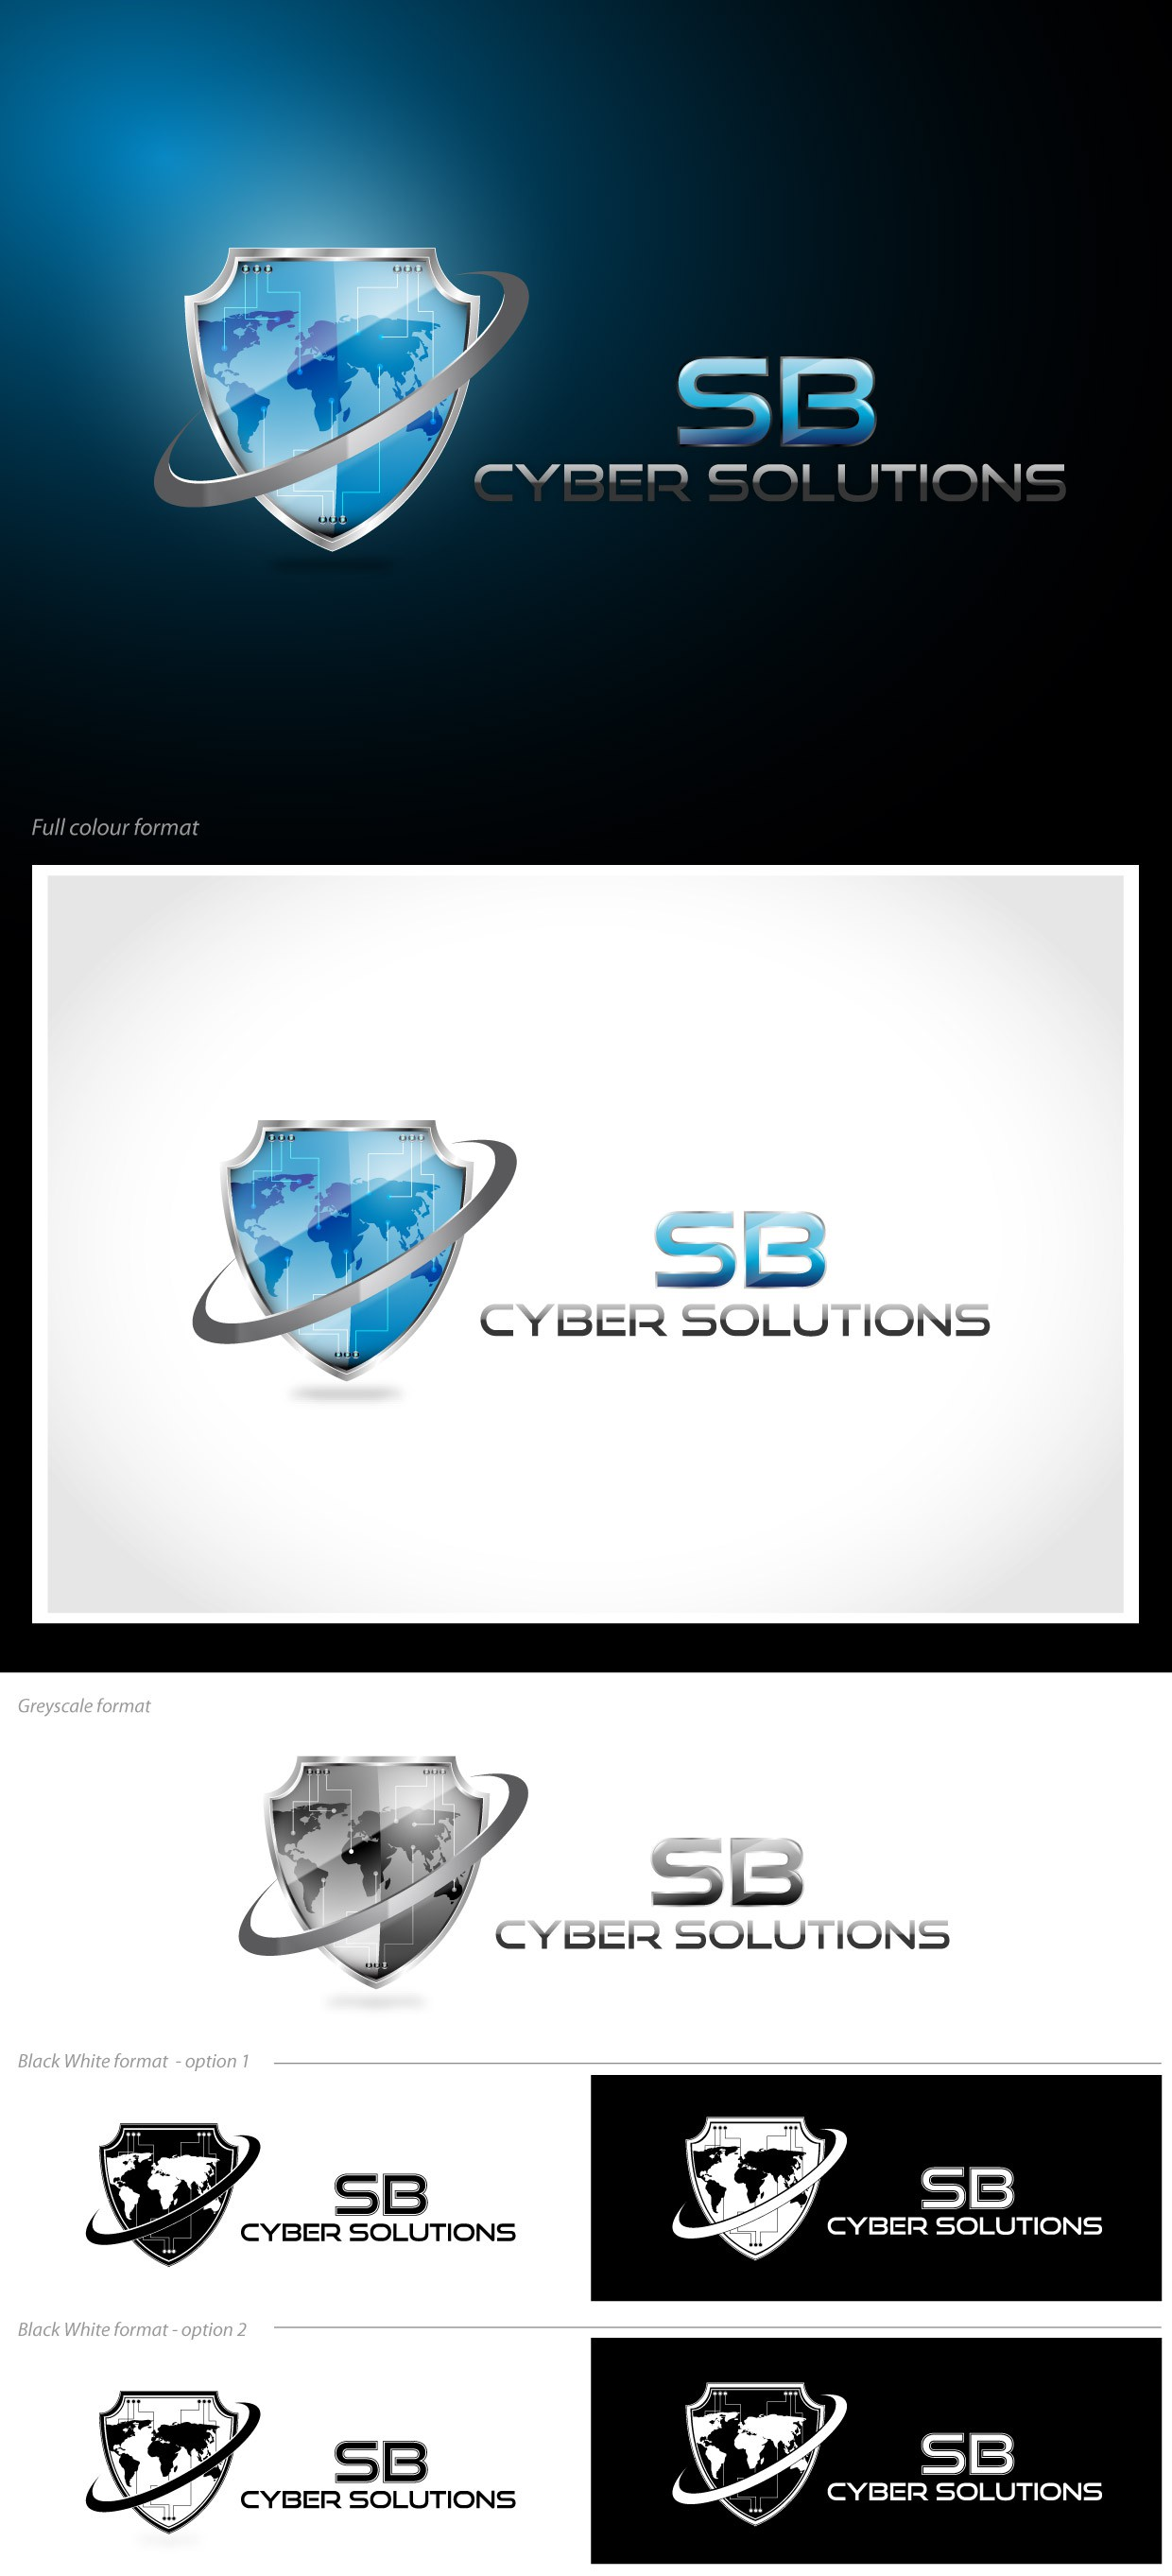 New logo wanted for SB Cyber Solutions